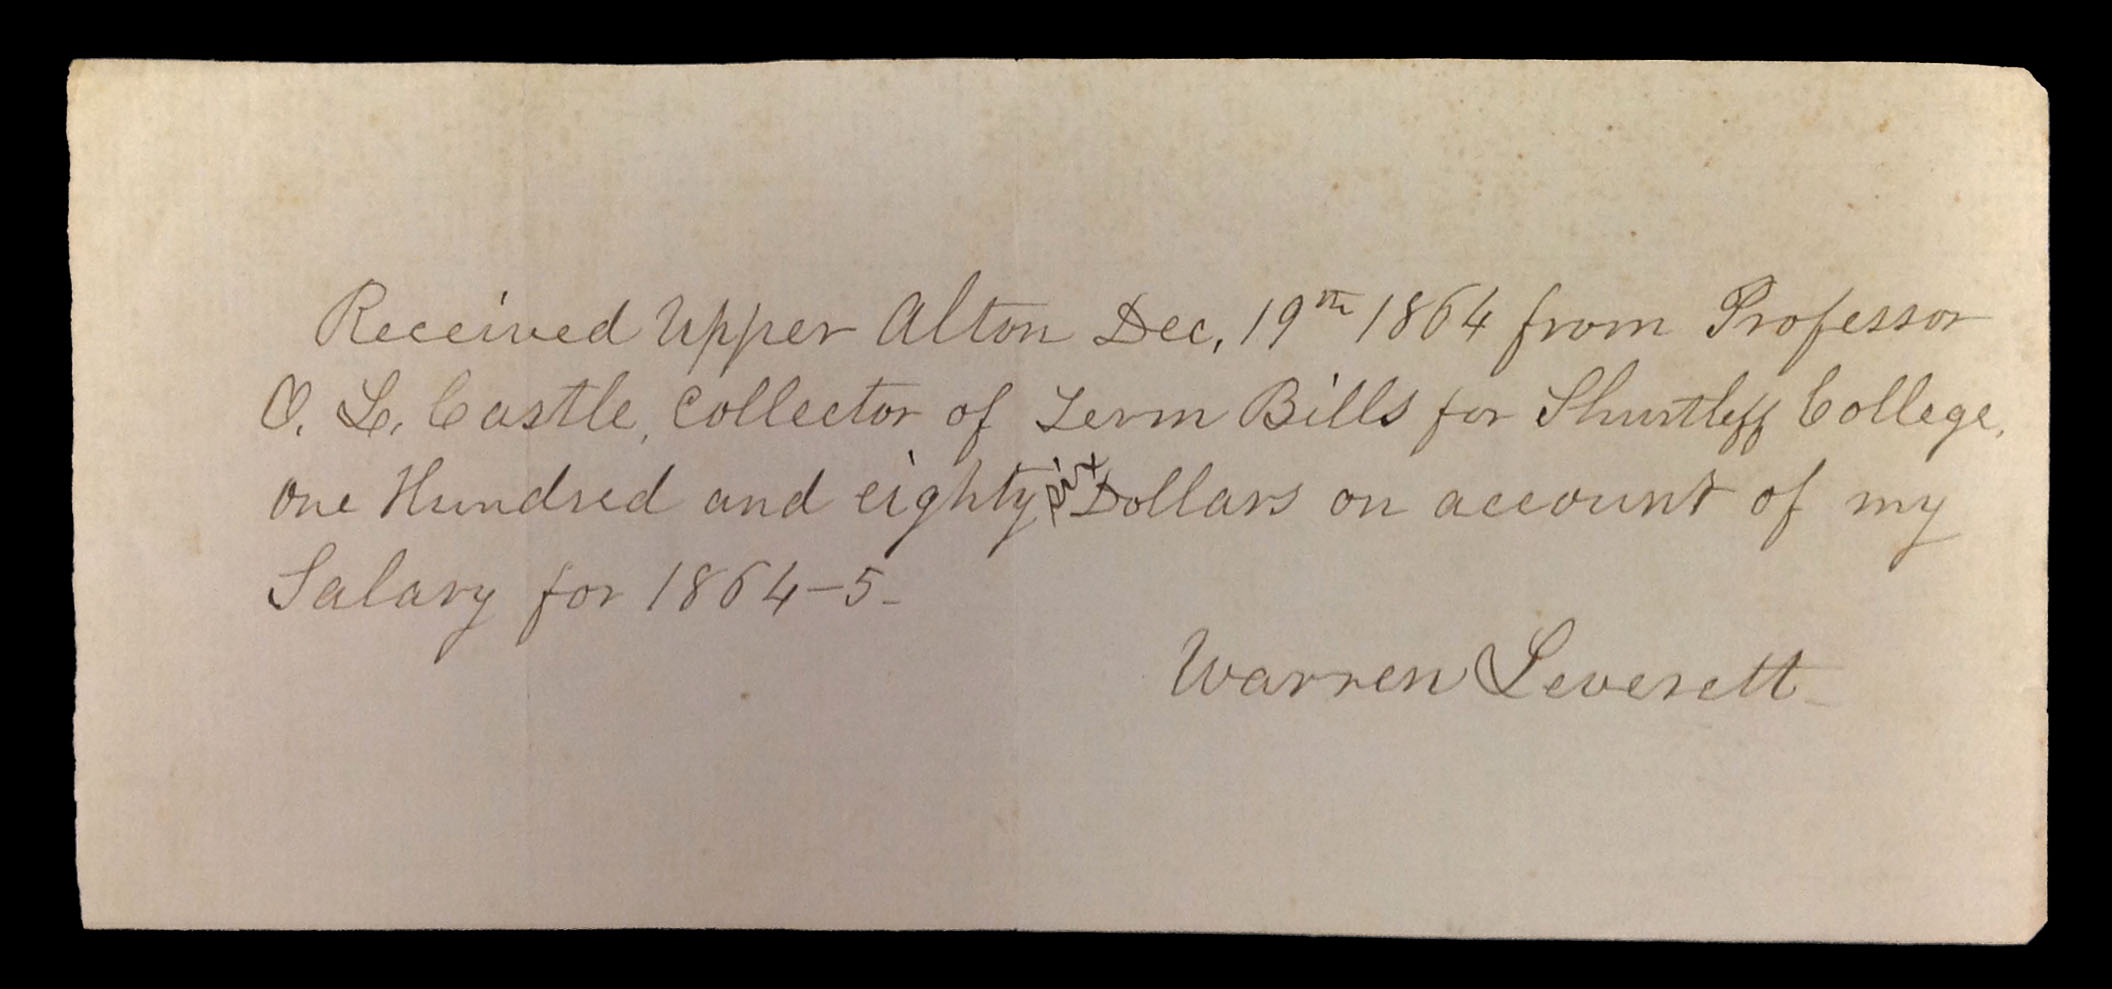 Note from Warren Leverett regarding his Shurtleff College salary, 1864.